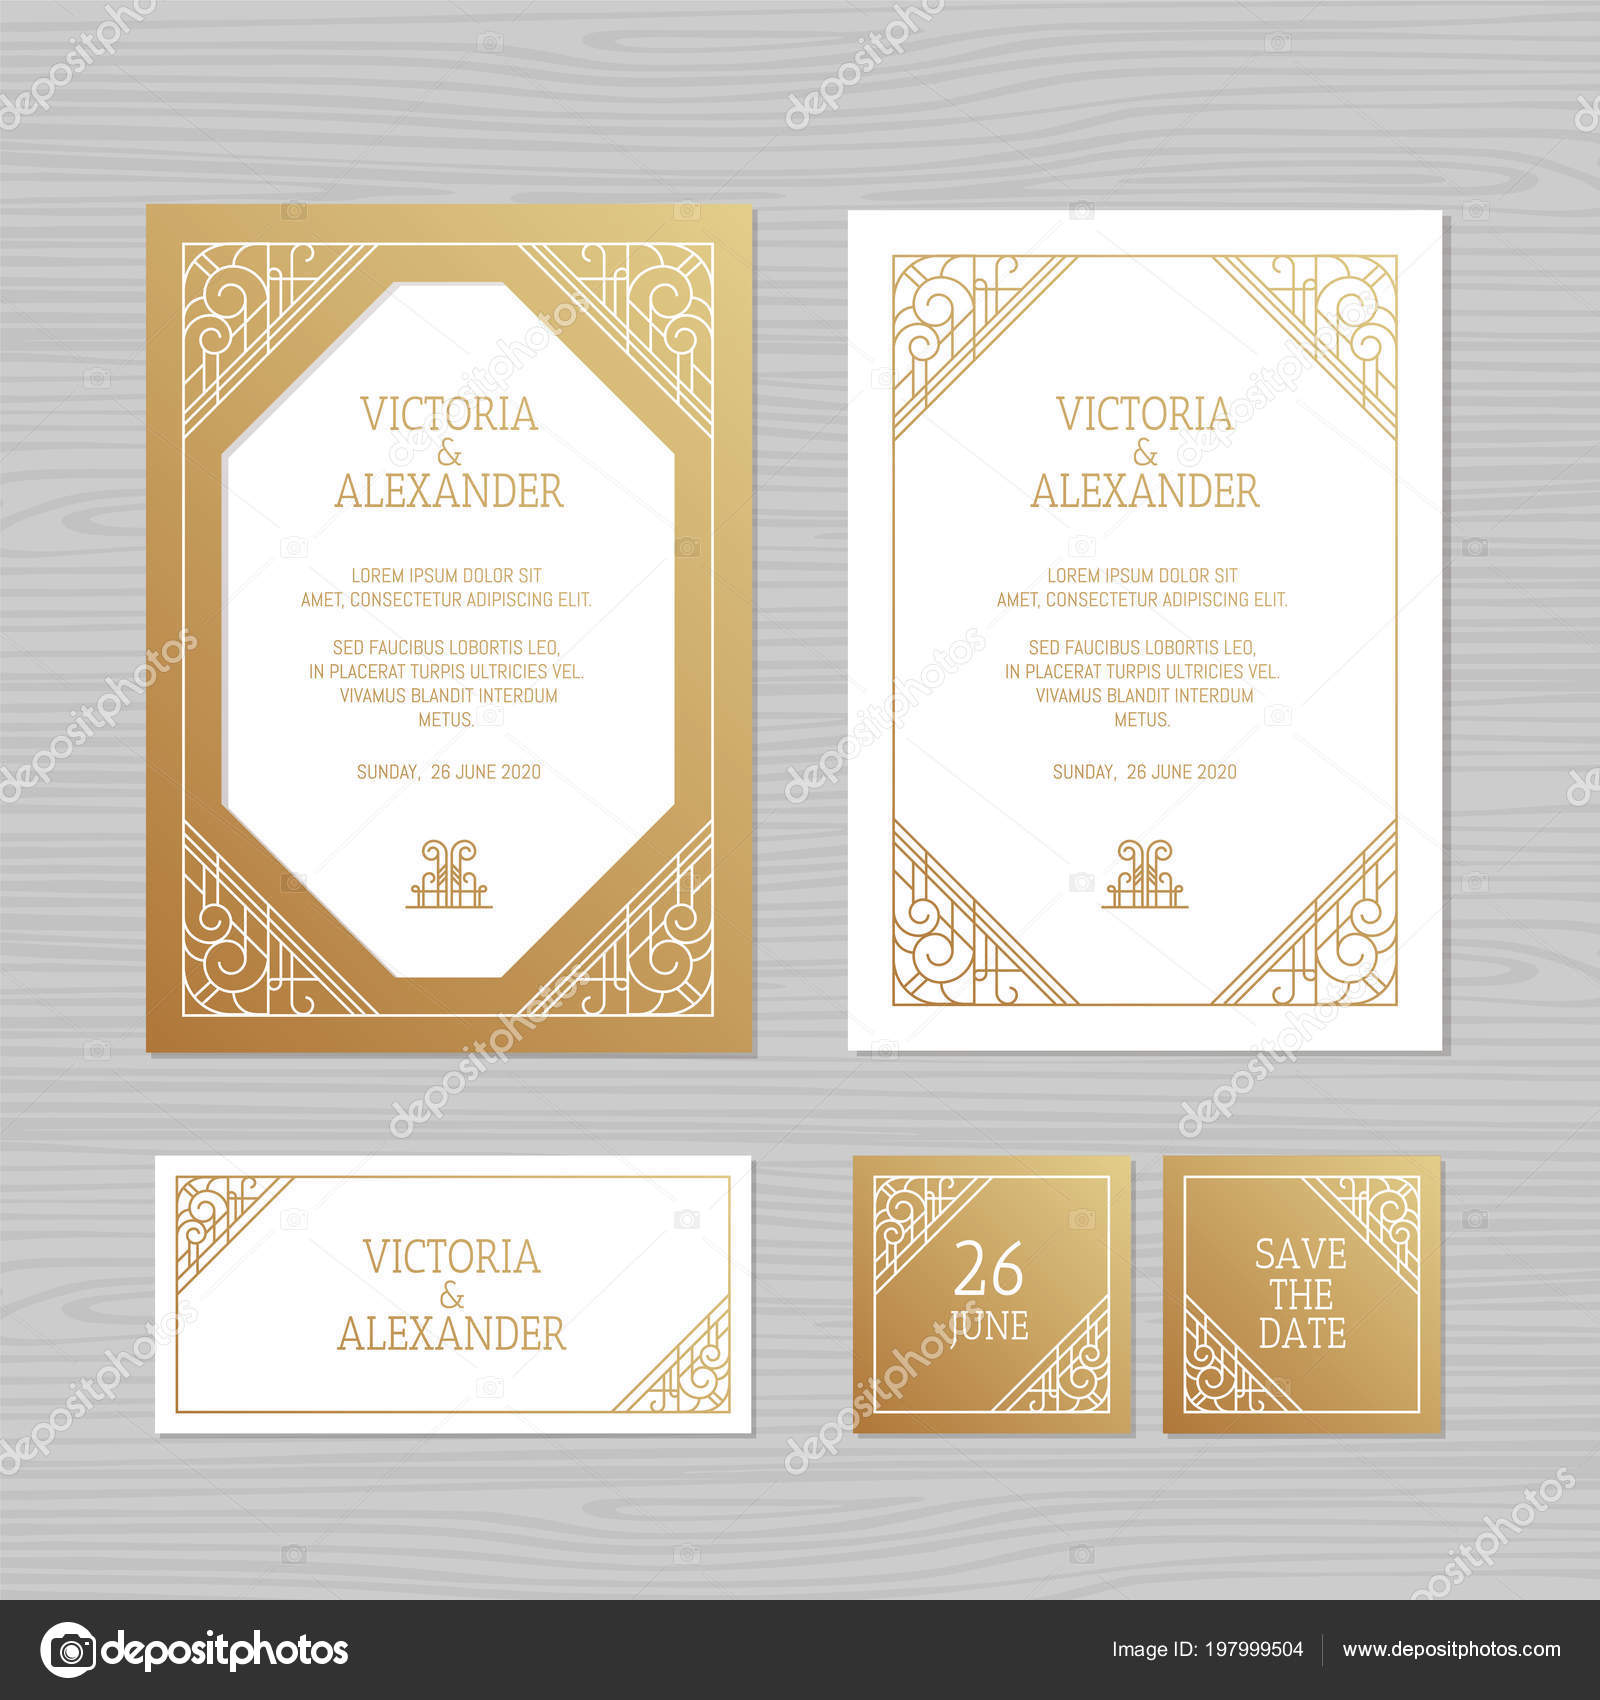 Luxury wedding invitation greeting card geometric ornament art deco paper envelope template wedding invitation envelope mock up for laser cutting vector illustration vector by olgamallary stopboris Image collections